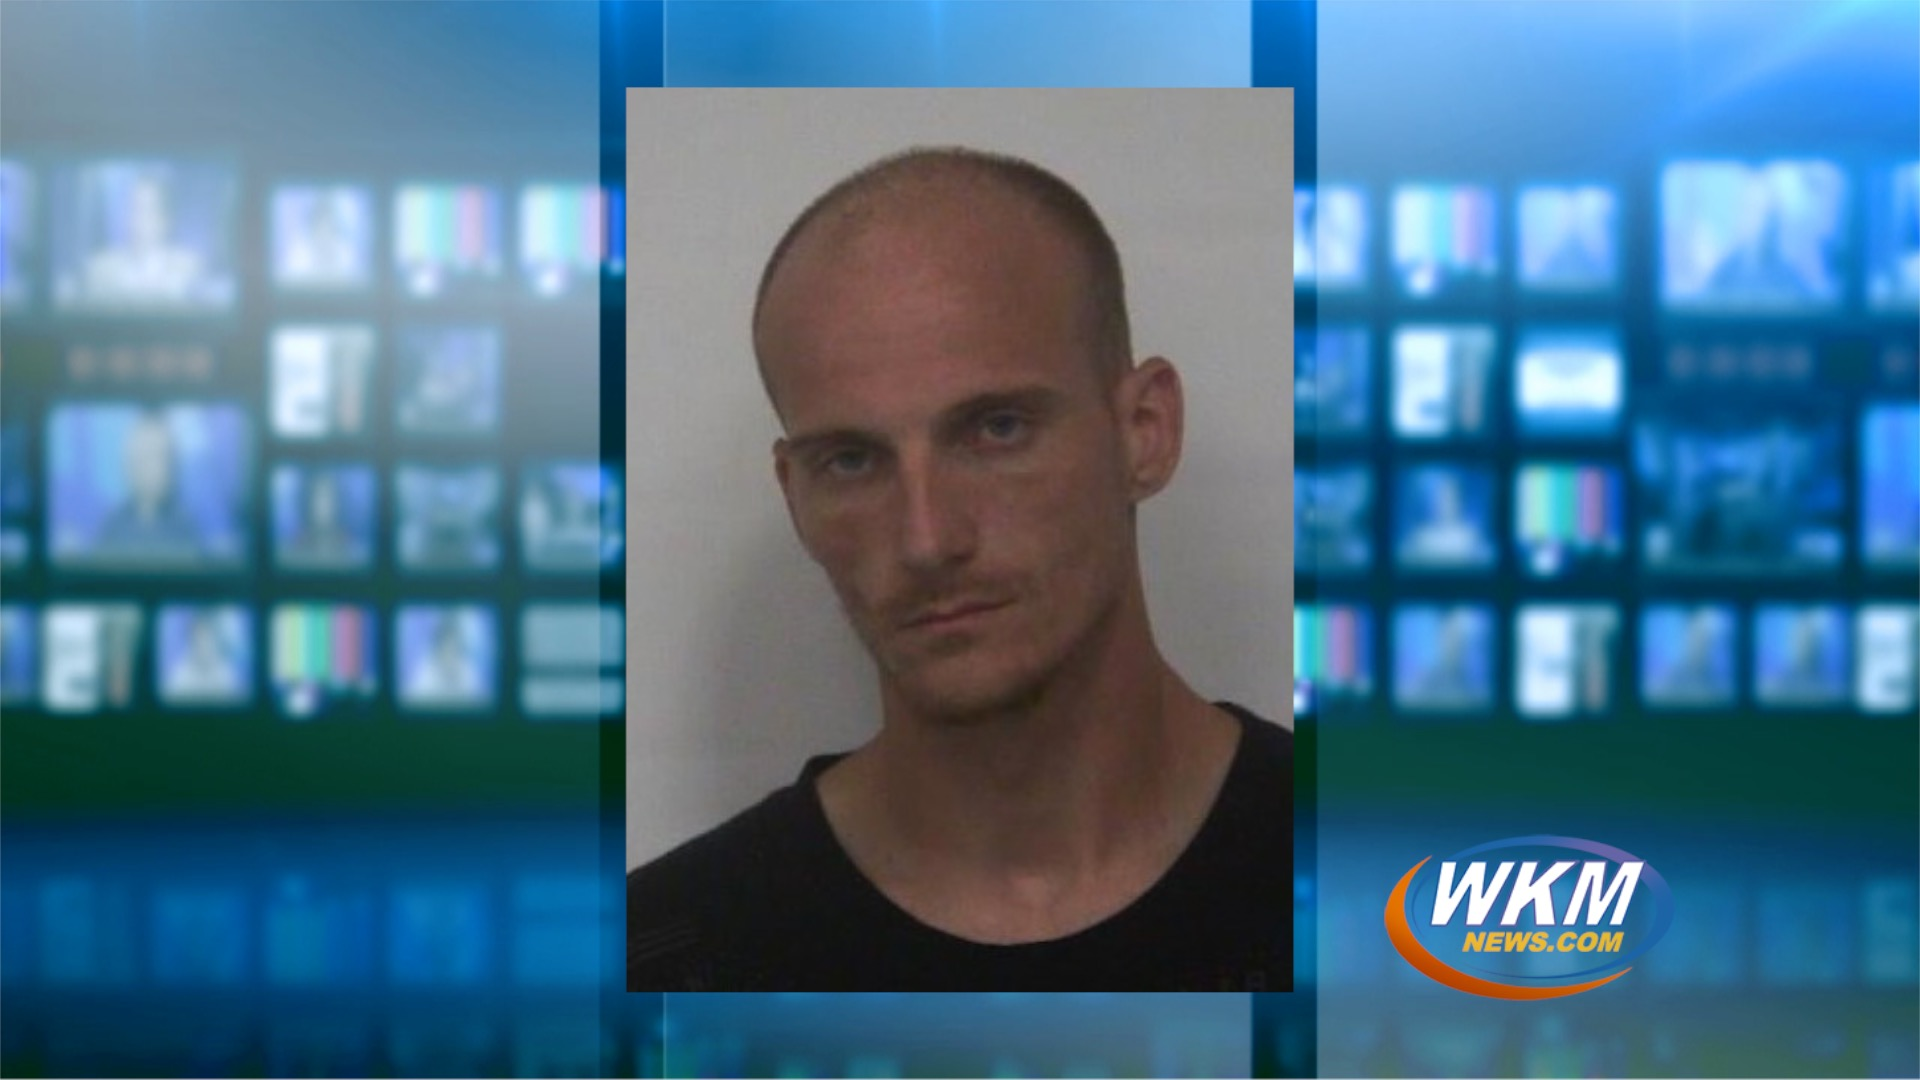 North Vernon Man Arrested After Burning a Person